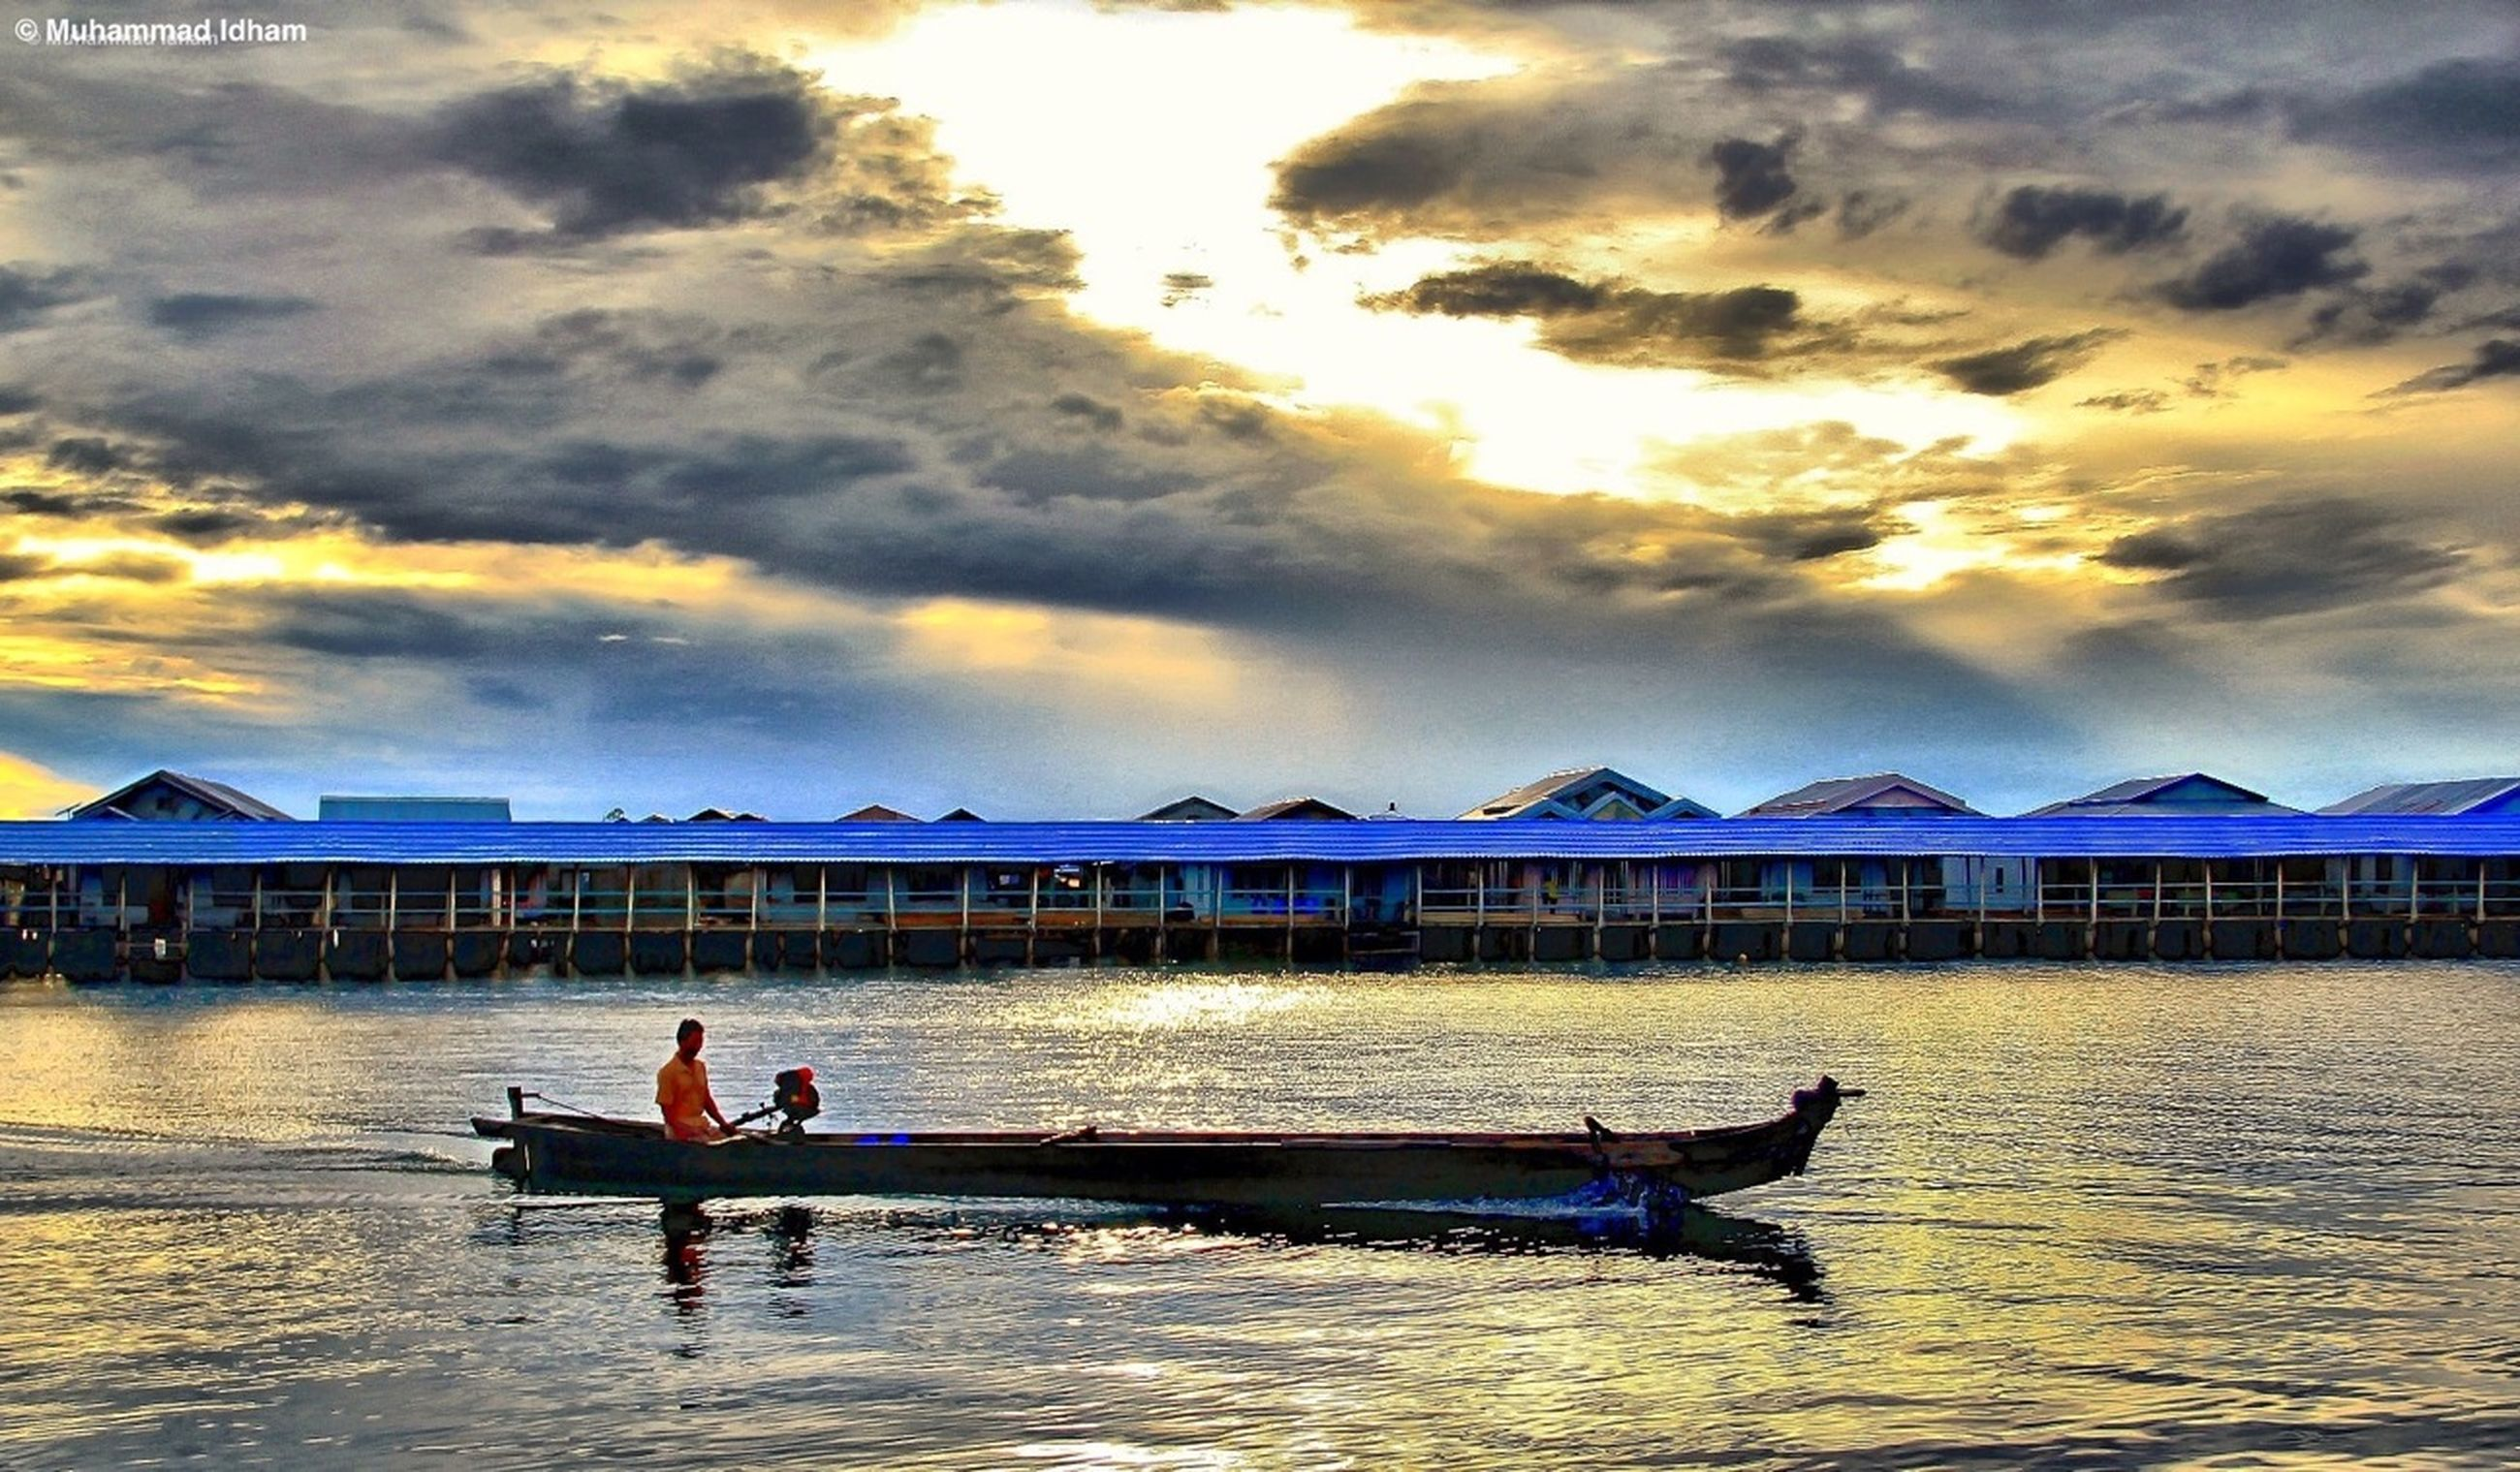 water, sky, sea, nautical vessel, cloud - sky, sunset, boat, transportation, lifestyles, leisure activity, scenics, mode of transport, men, beach, tranquility, vacations, tranquil scene, beauty in nature, cloud